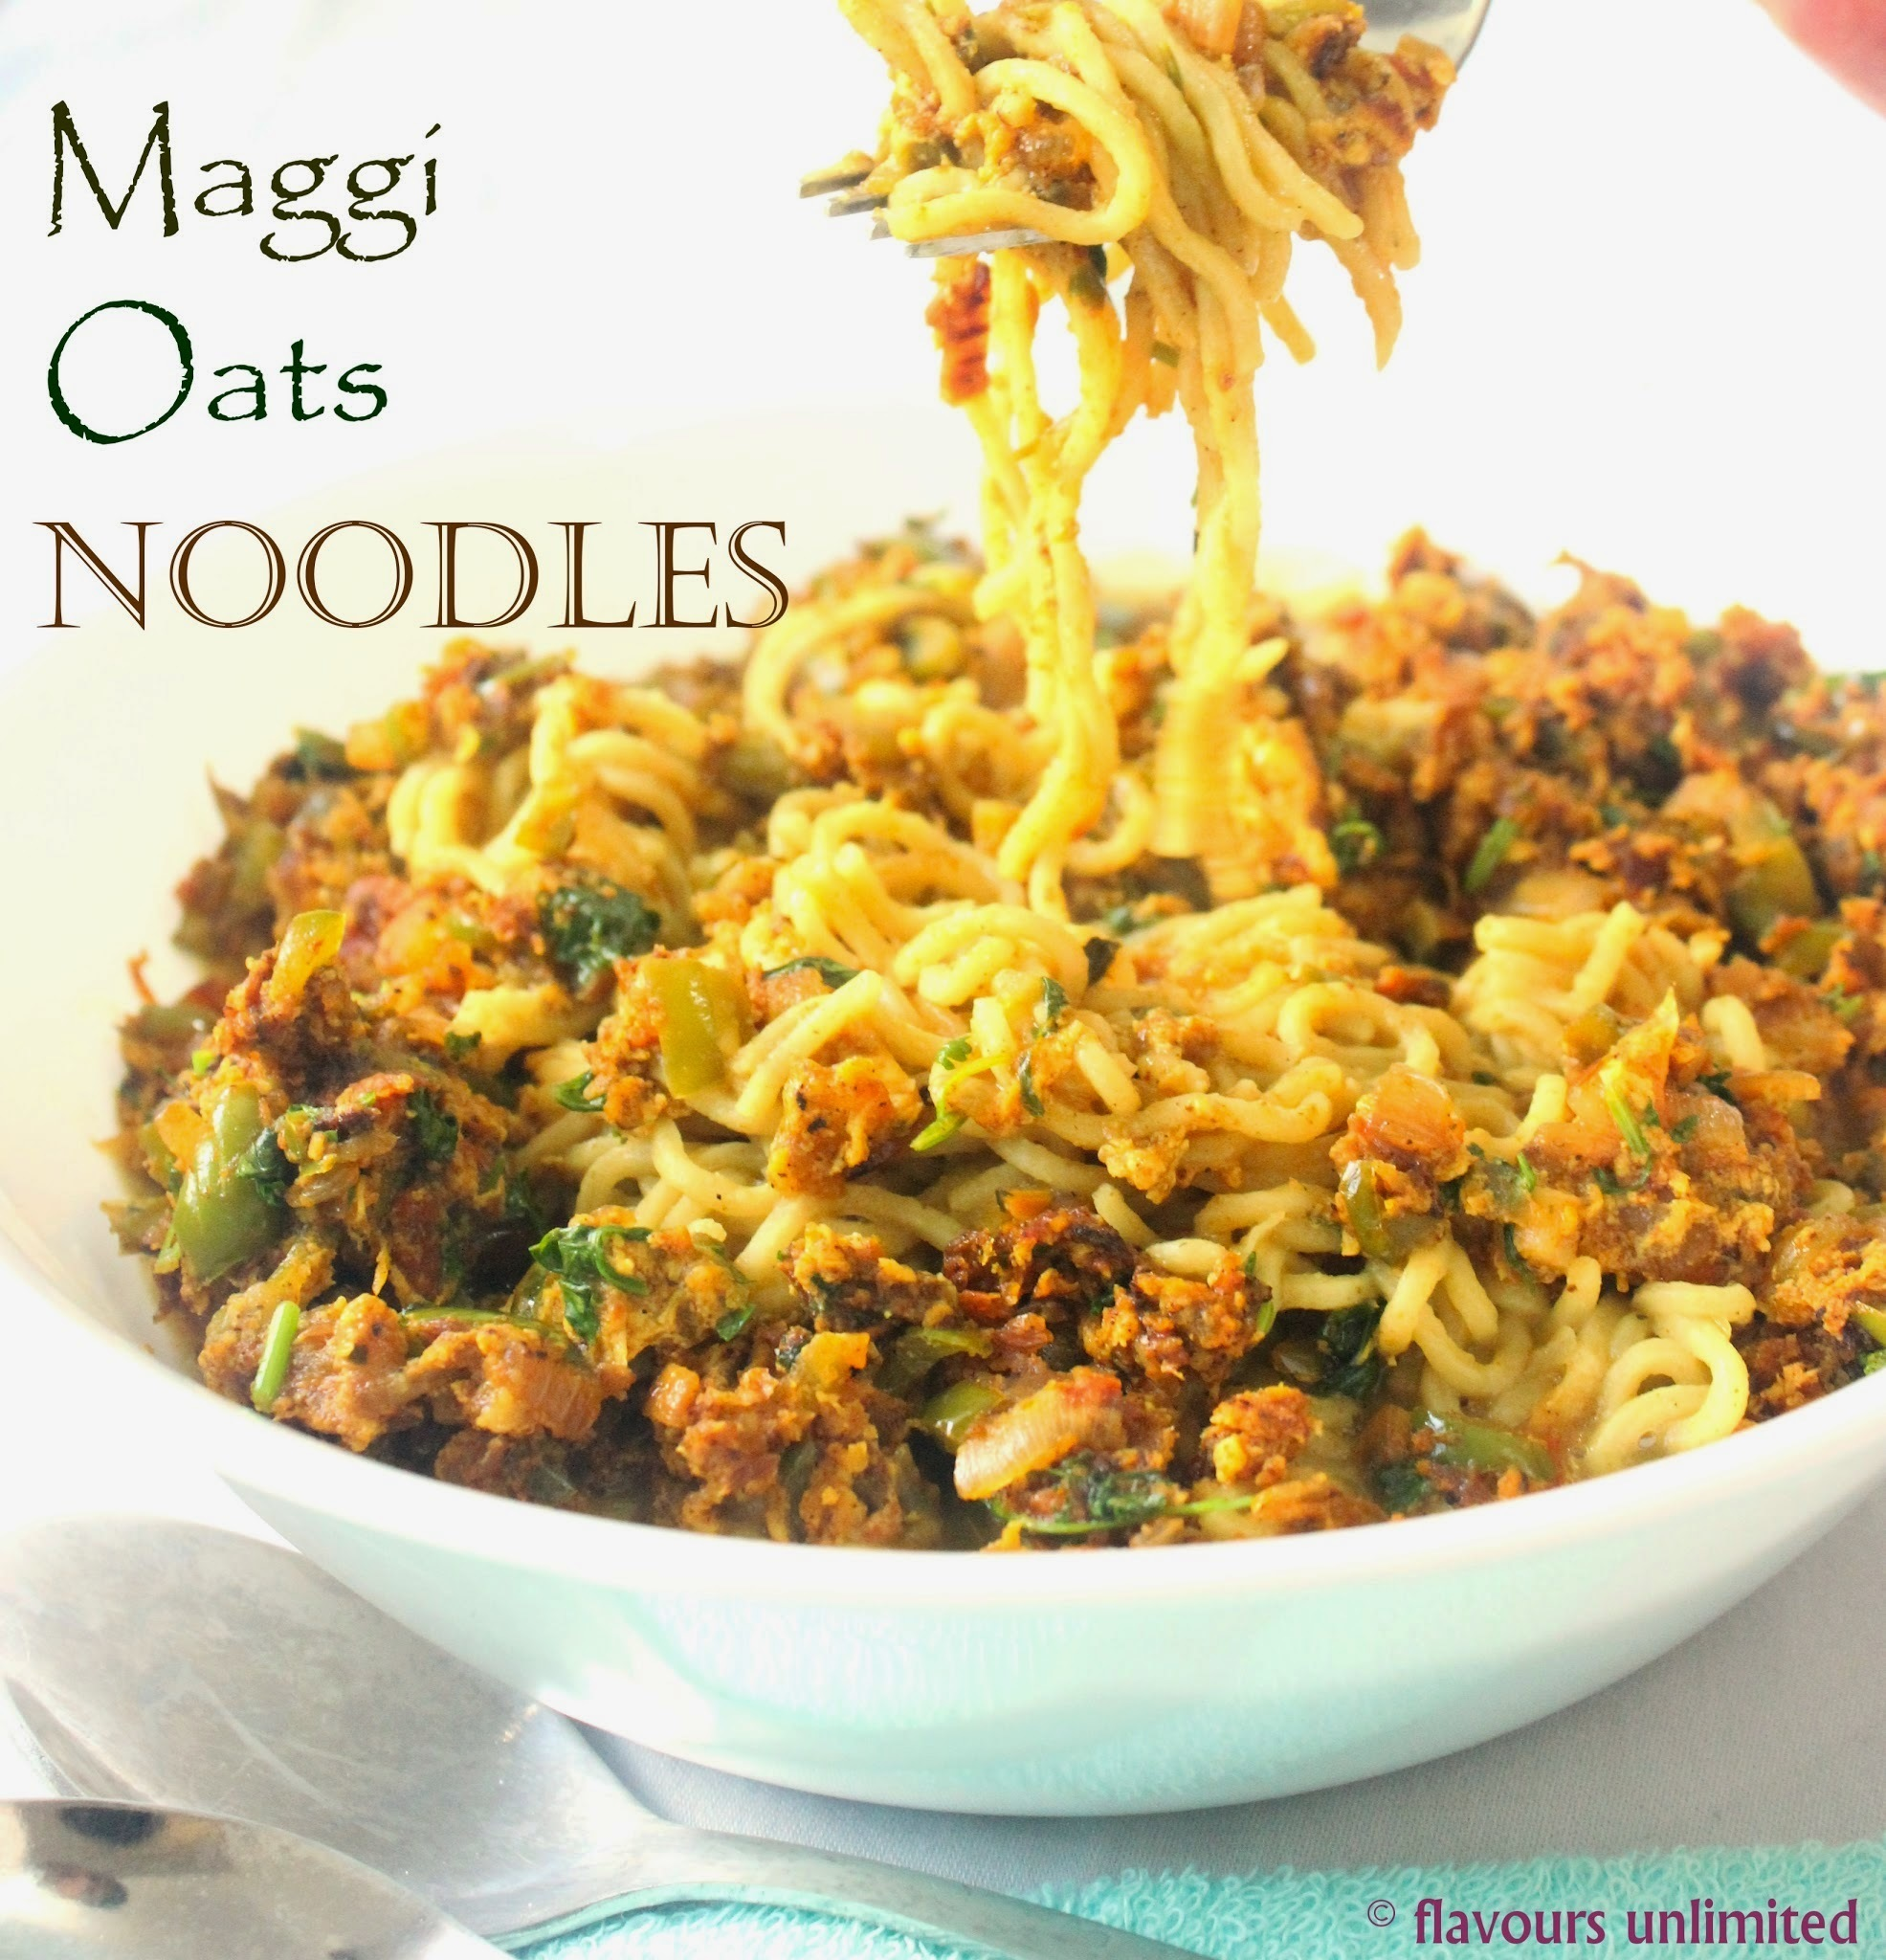 Maggi Oats Noodles - We all love our 2 minutes noodles